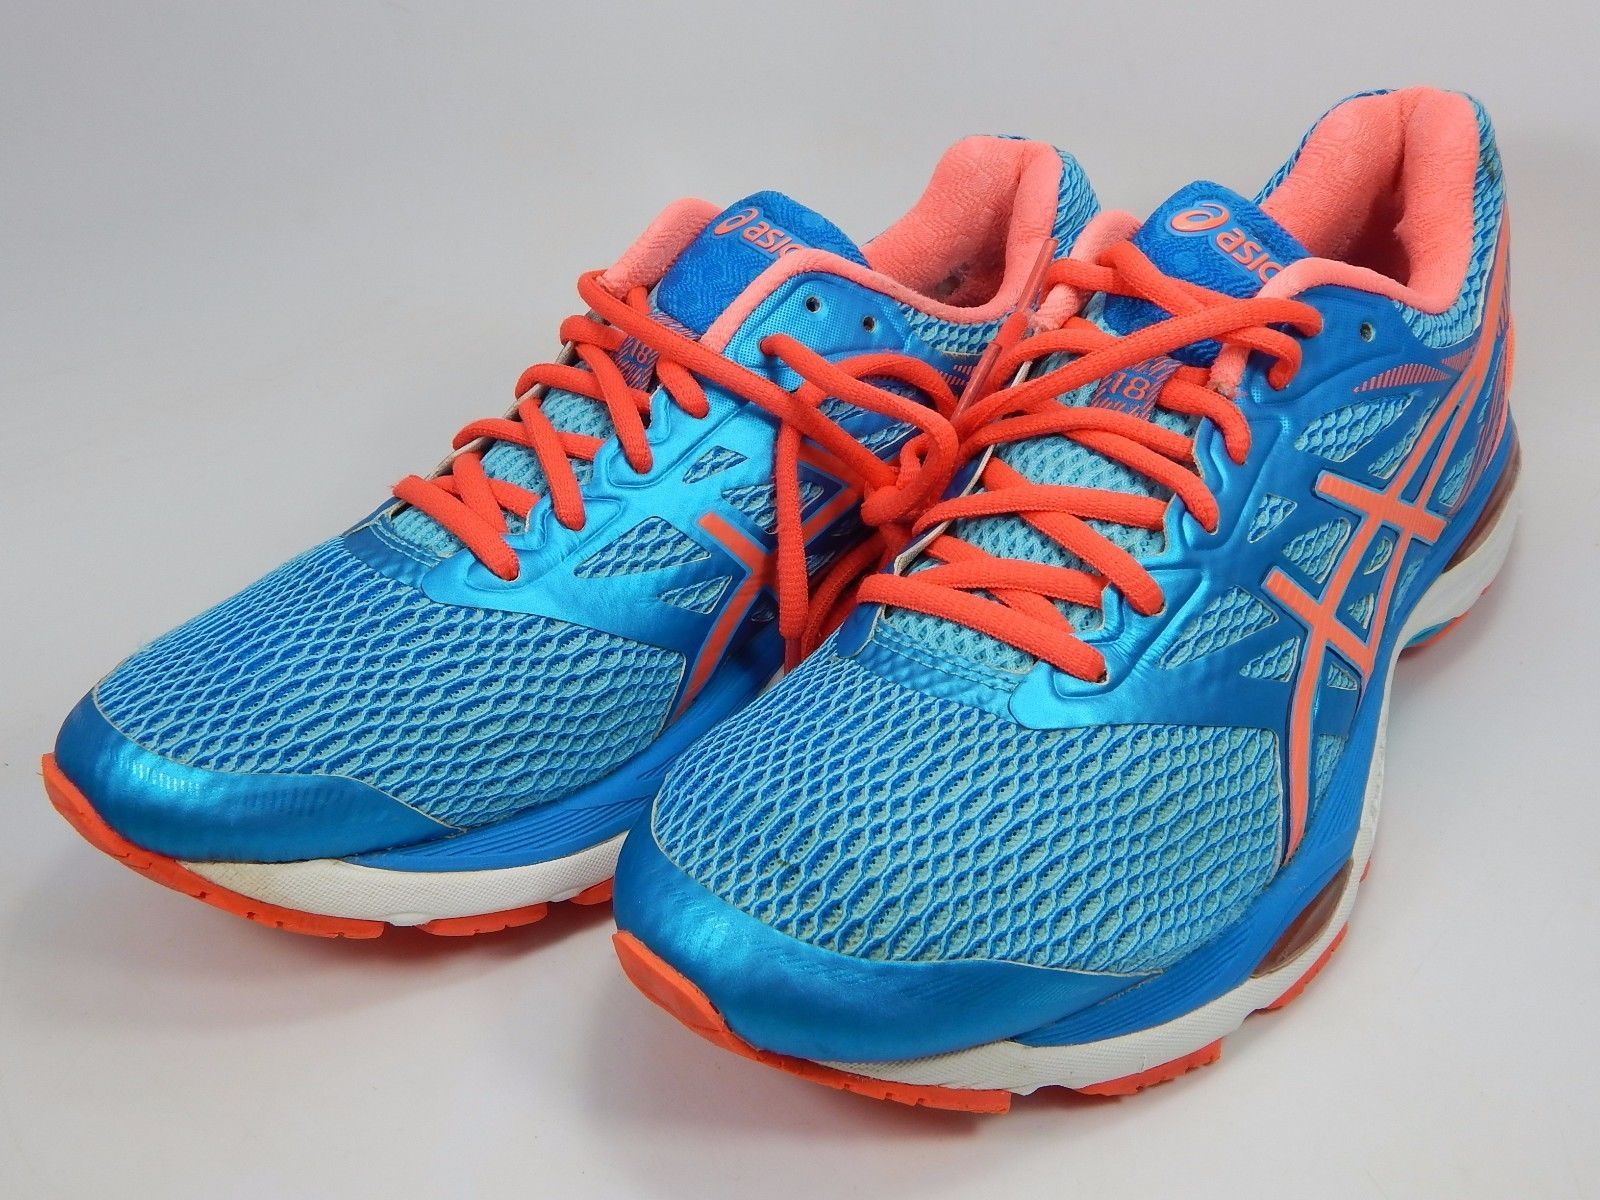 Asics Gel Cumulus 18 Women's Running Shoes Size US 9 M (B) EU 40.5 Blue T6C8N